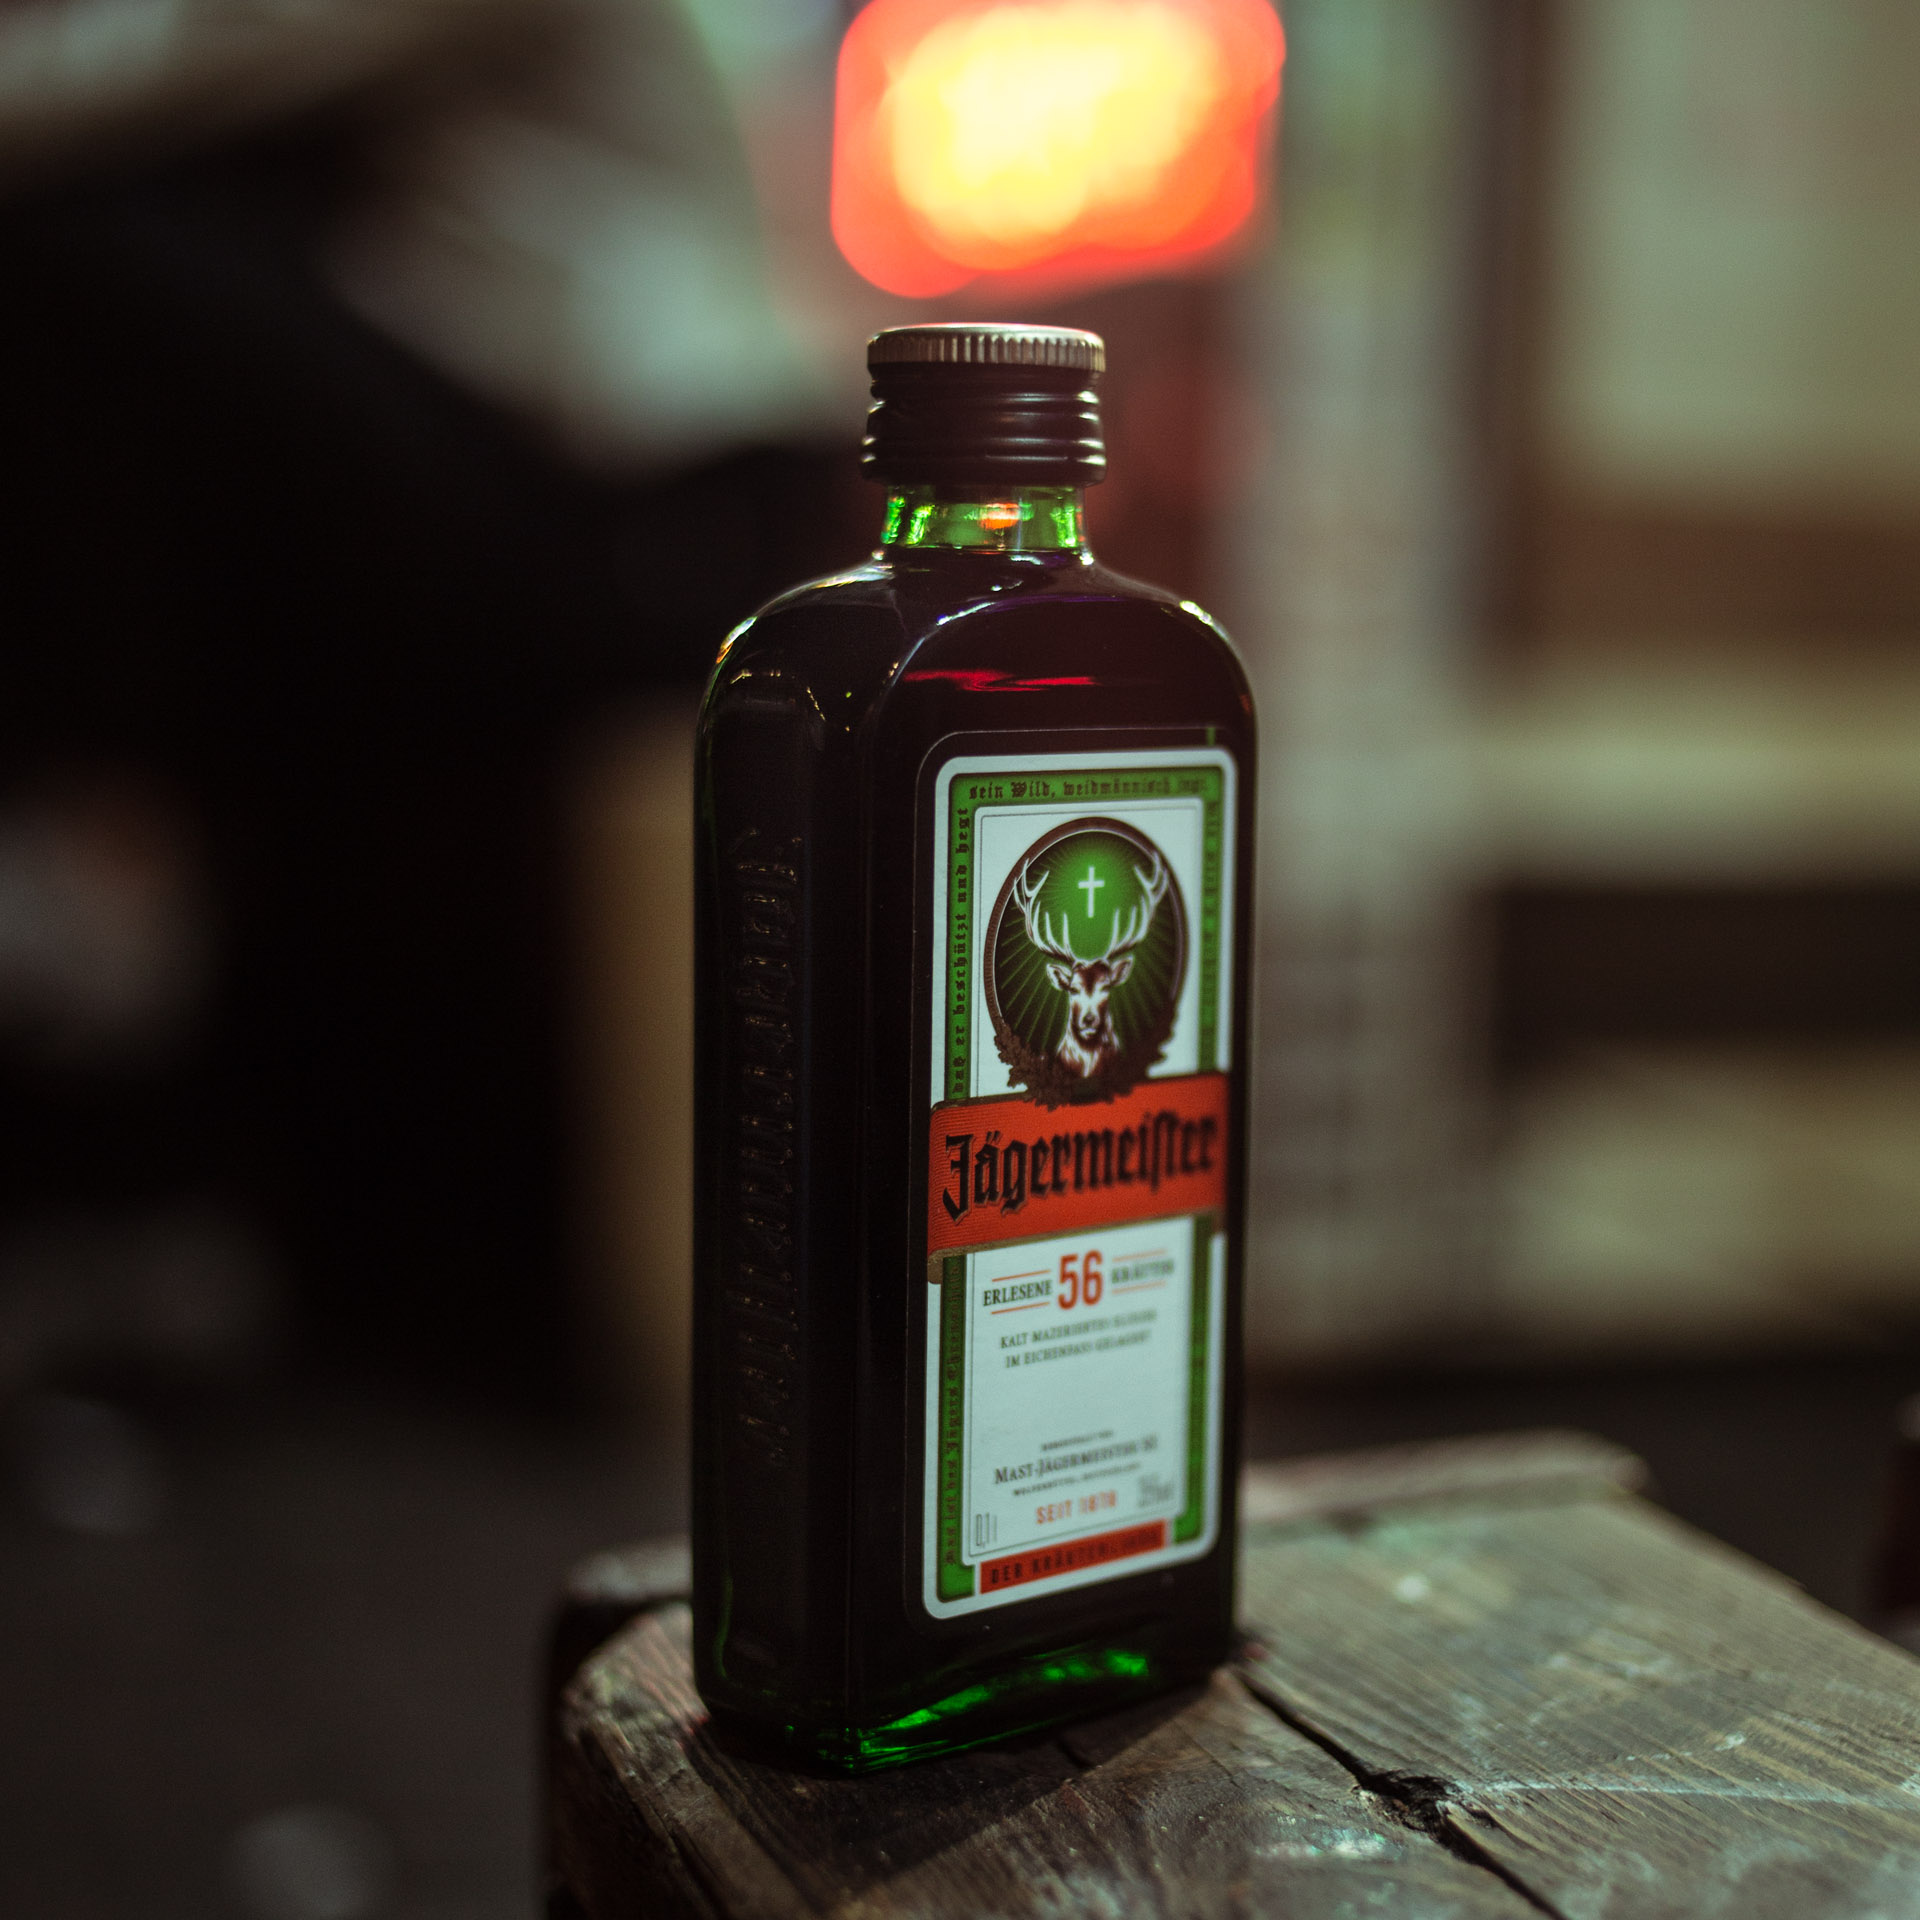 Darwin Stapel Product Photography Jaegermeister Jägermeister Deutschland Photographer Berlin